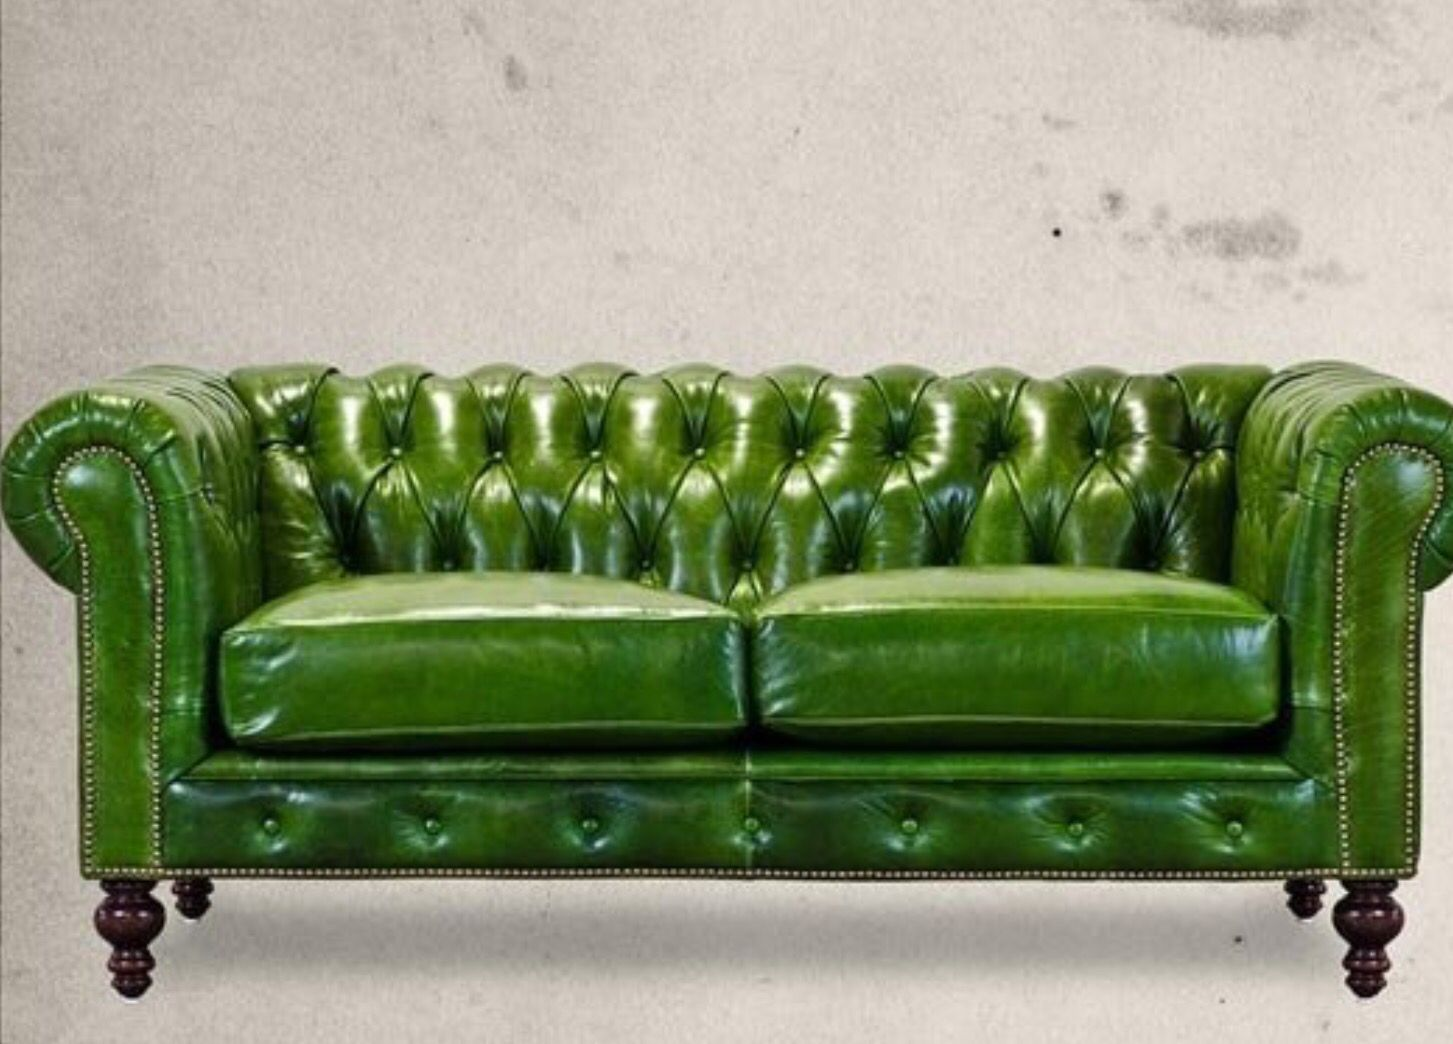 Apple Green Chesterfield Sofa Interior Design Furniture Objects D 39 Art Lamps And Fabrics